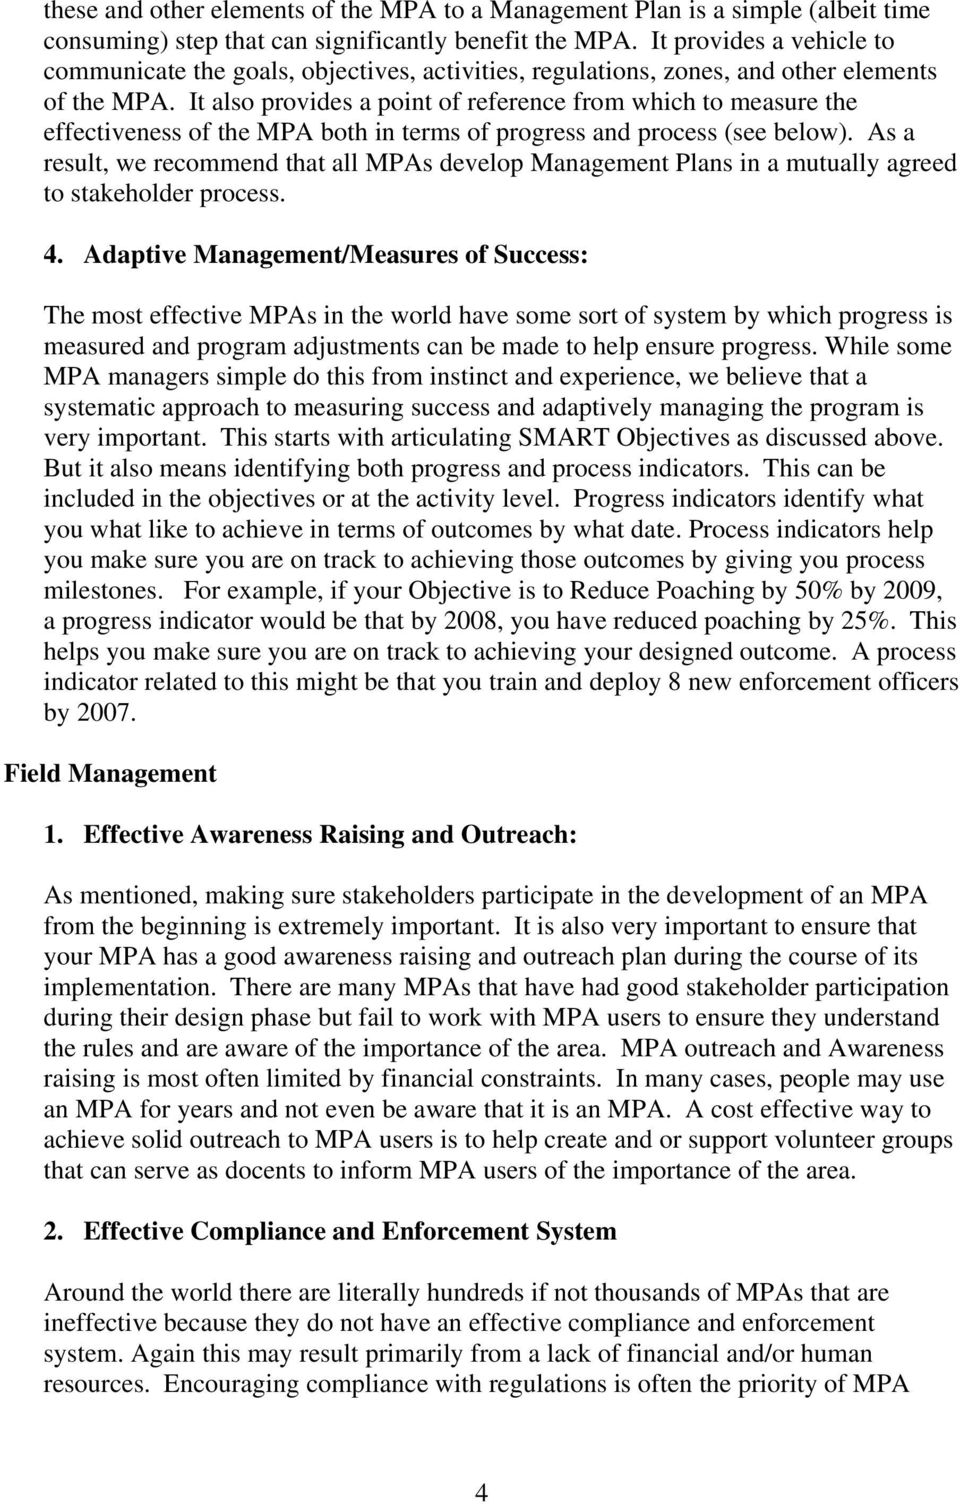 It also provides a point of reference from which to measure the effectiveness of the MPA both in terms of progress and process (see below).